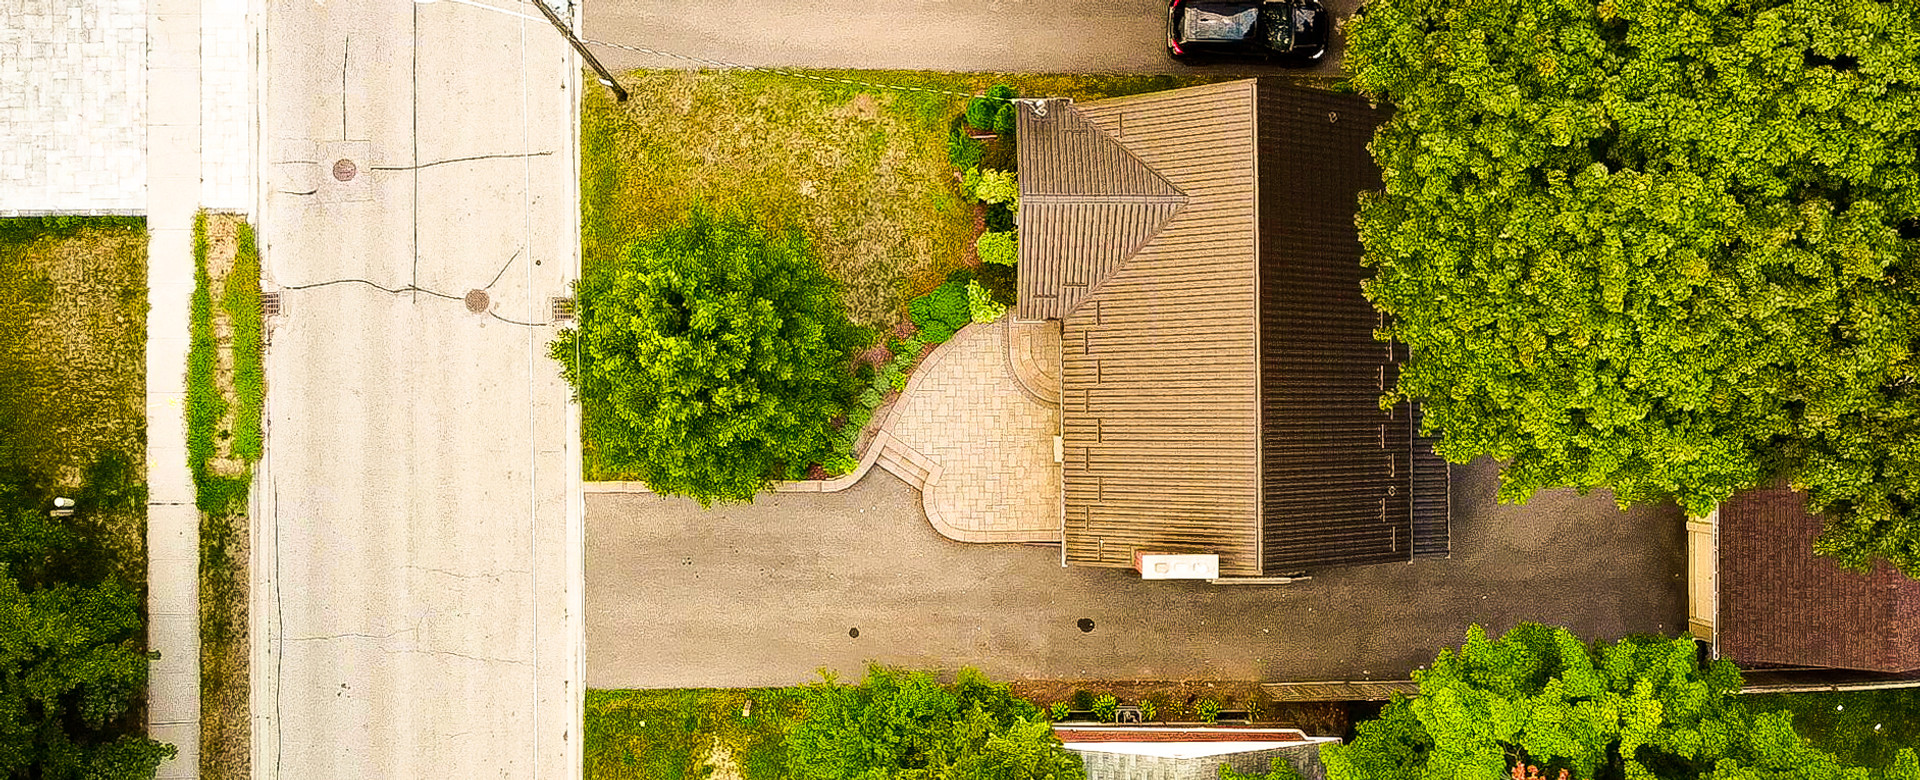 AERIAL AND INTERIOR FOOTAGE FOR REAL ESTATE